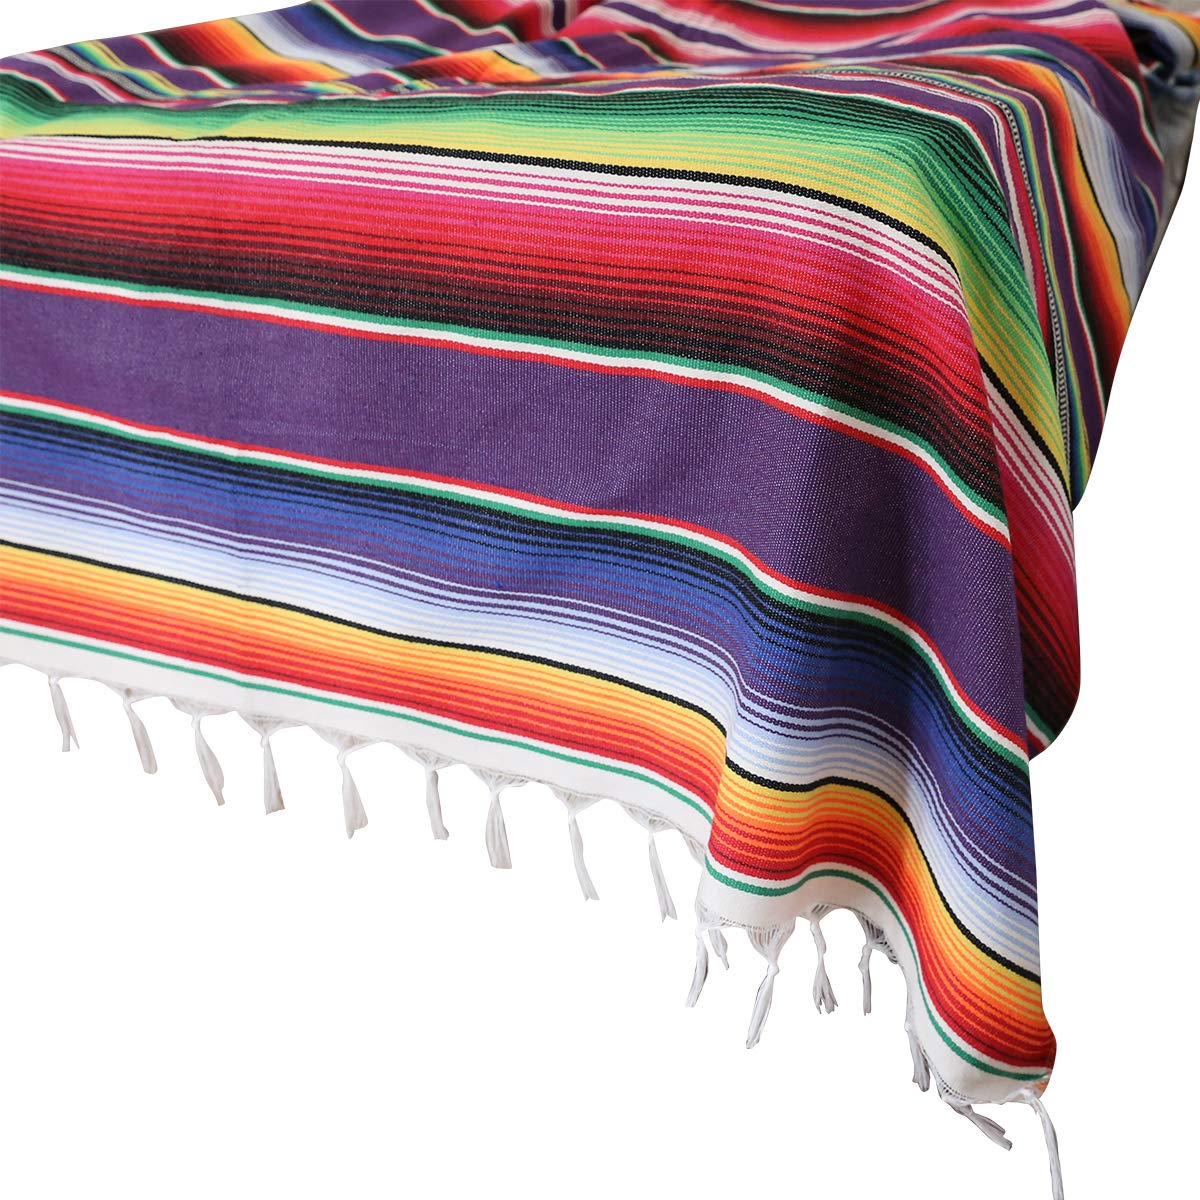 59 x 84 in Mexican Tablecloth for Mexican Party Wedding Decorations, Mexican Saltillo Serape Blanket Bed Blanket Outdoor Table Cover Table Cloth Tapestry Blanket Picnic Mat by Xplanet